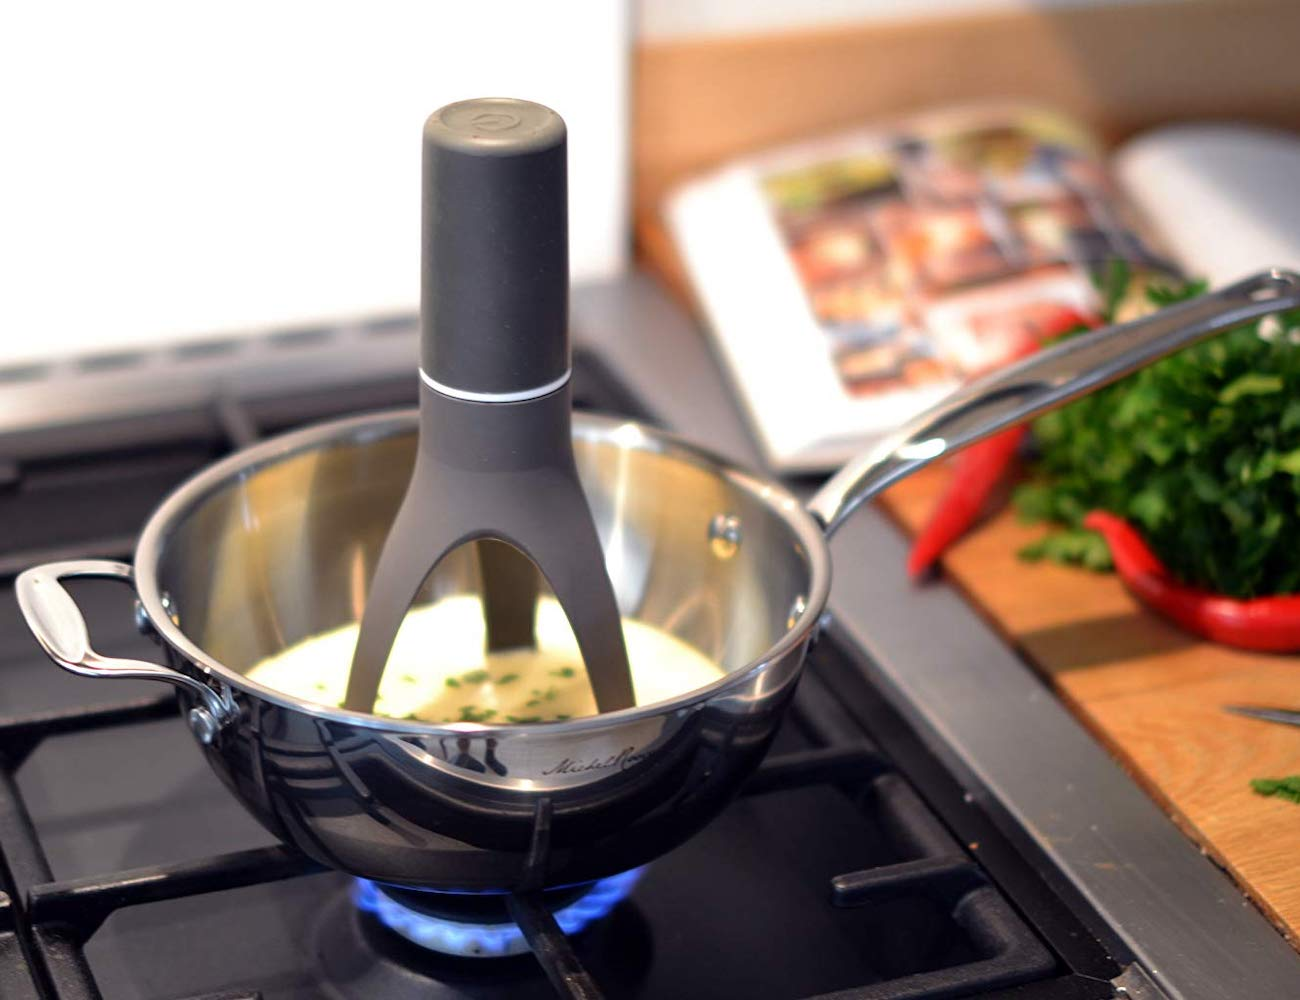 Uutensil Stirr Automatic Pan Stirrer stirs all your pots for you